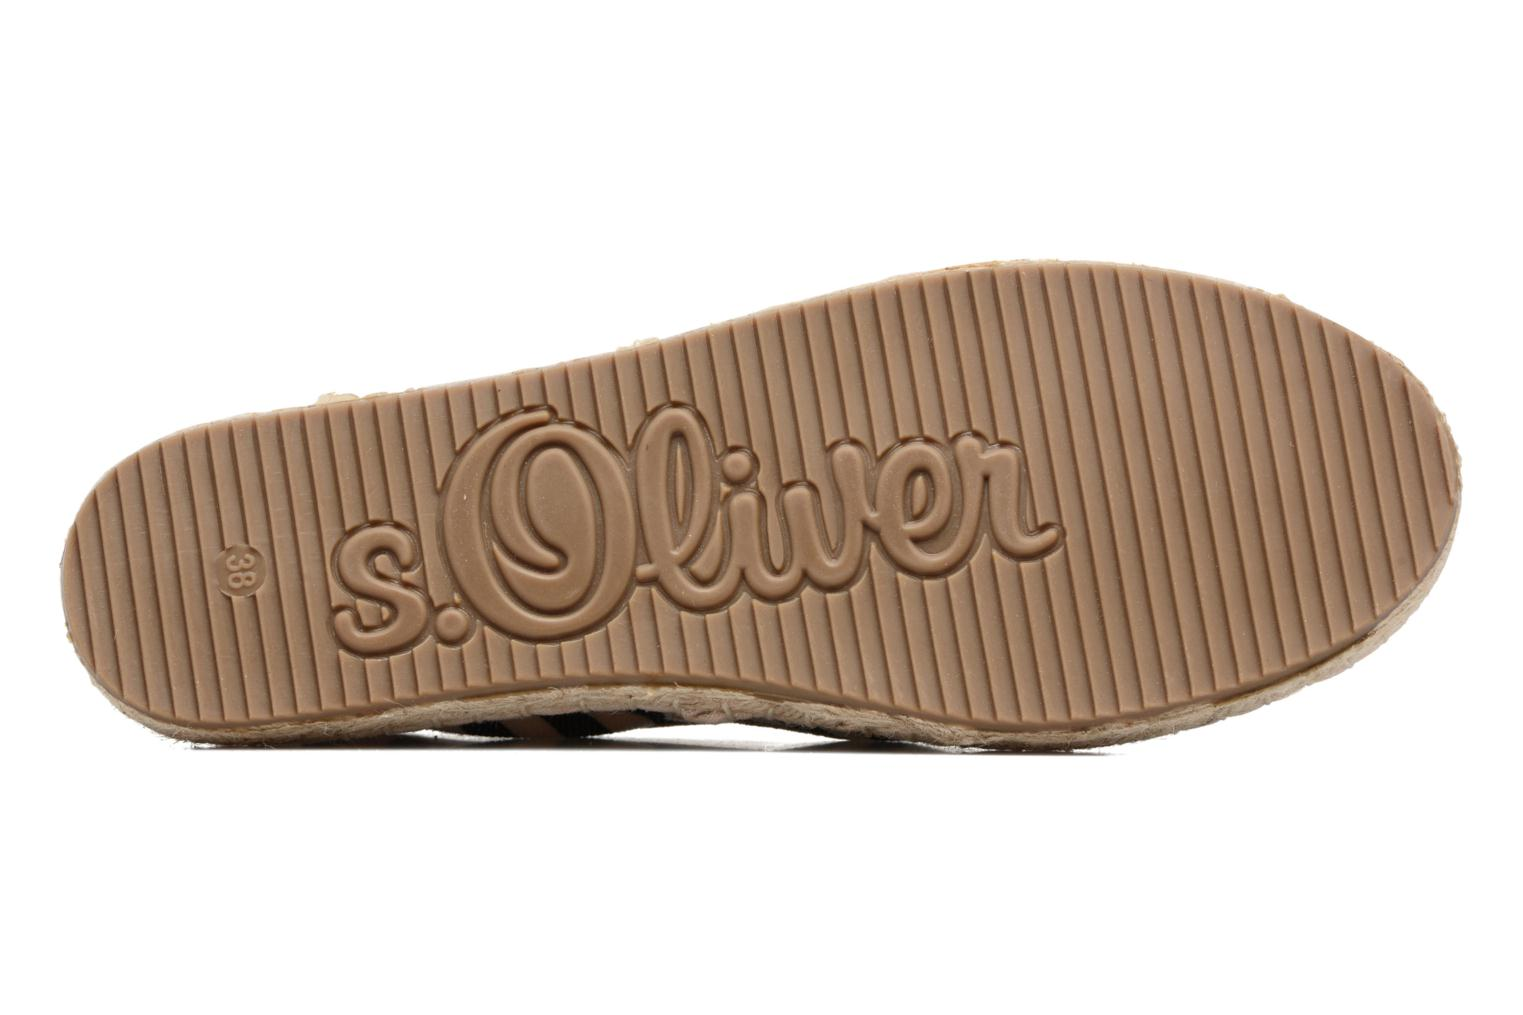 Espadrilles S.Oliver Sapotille Multicolor view from above